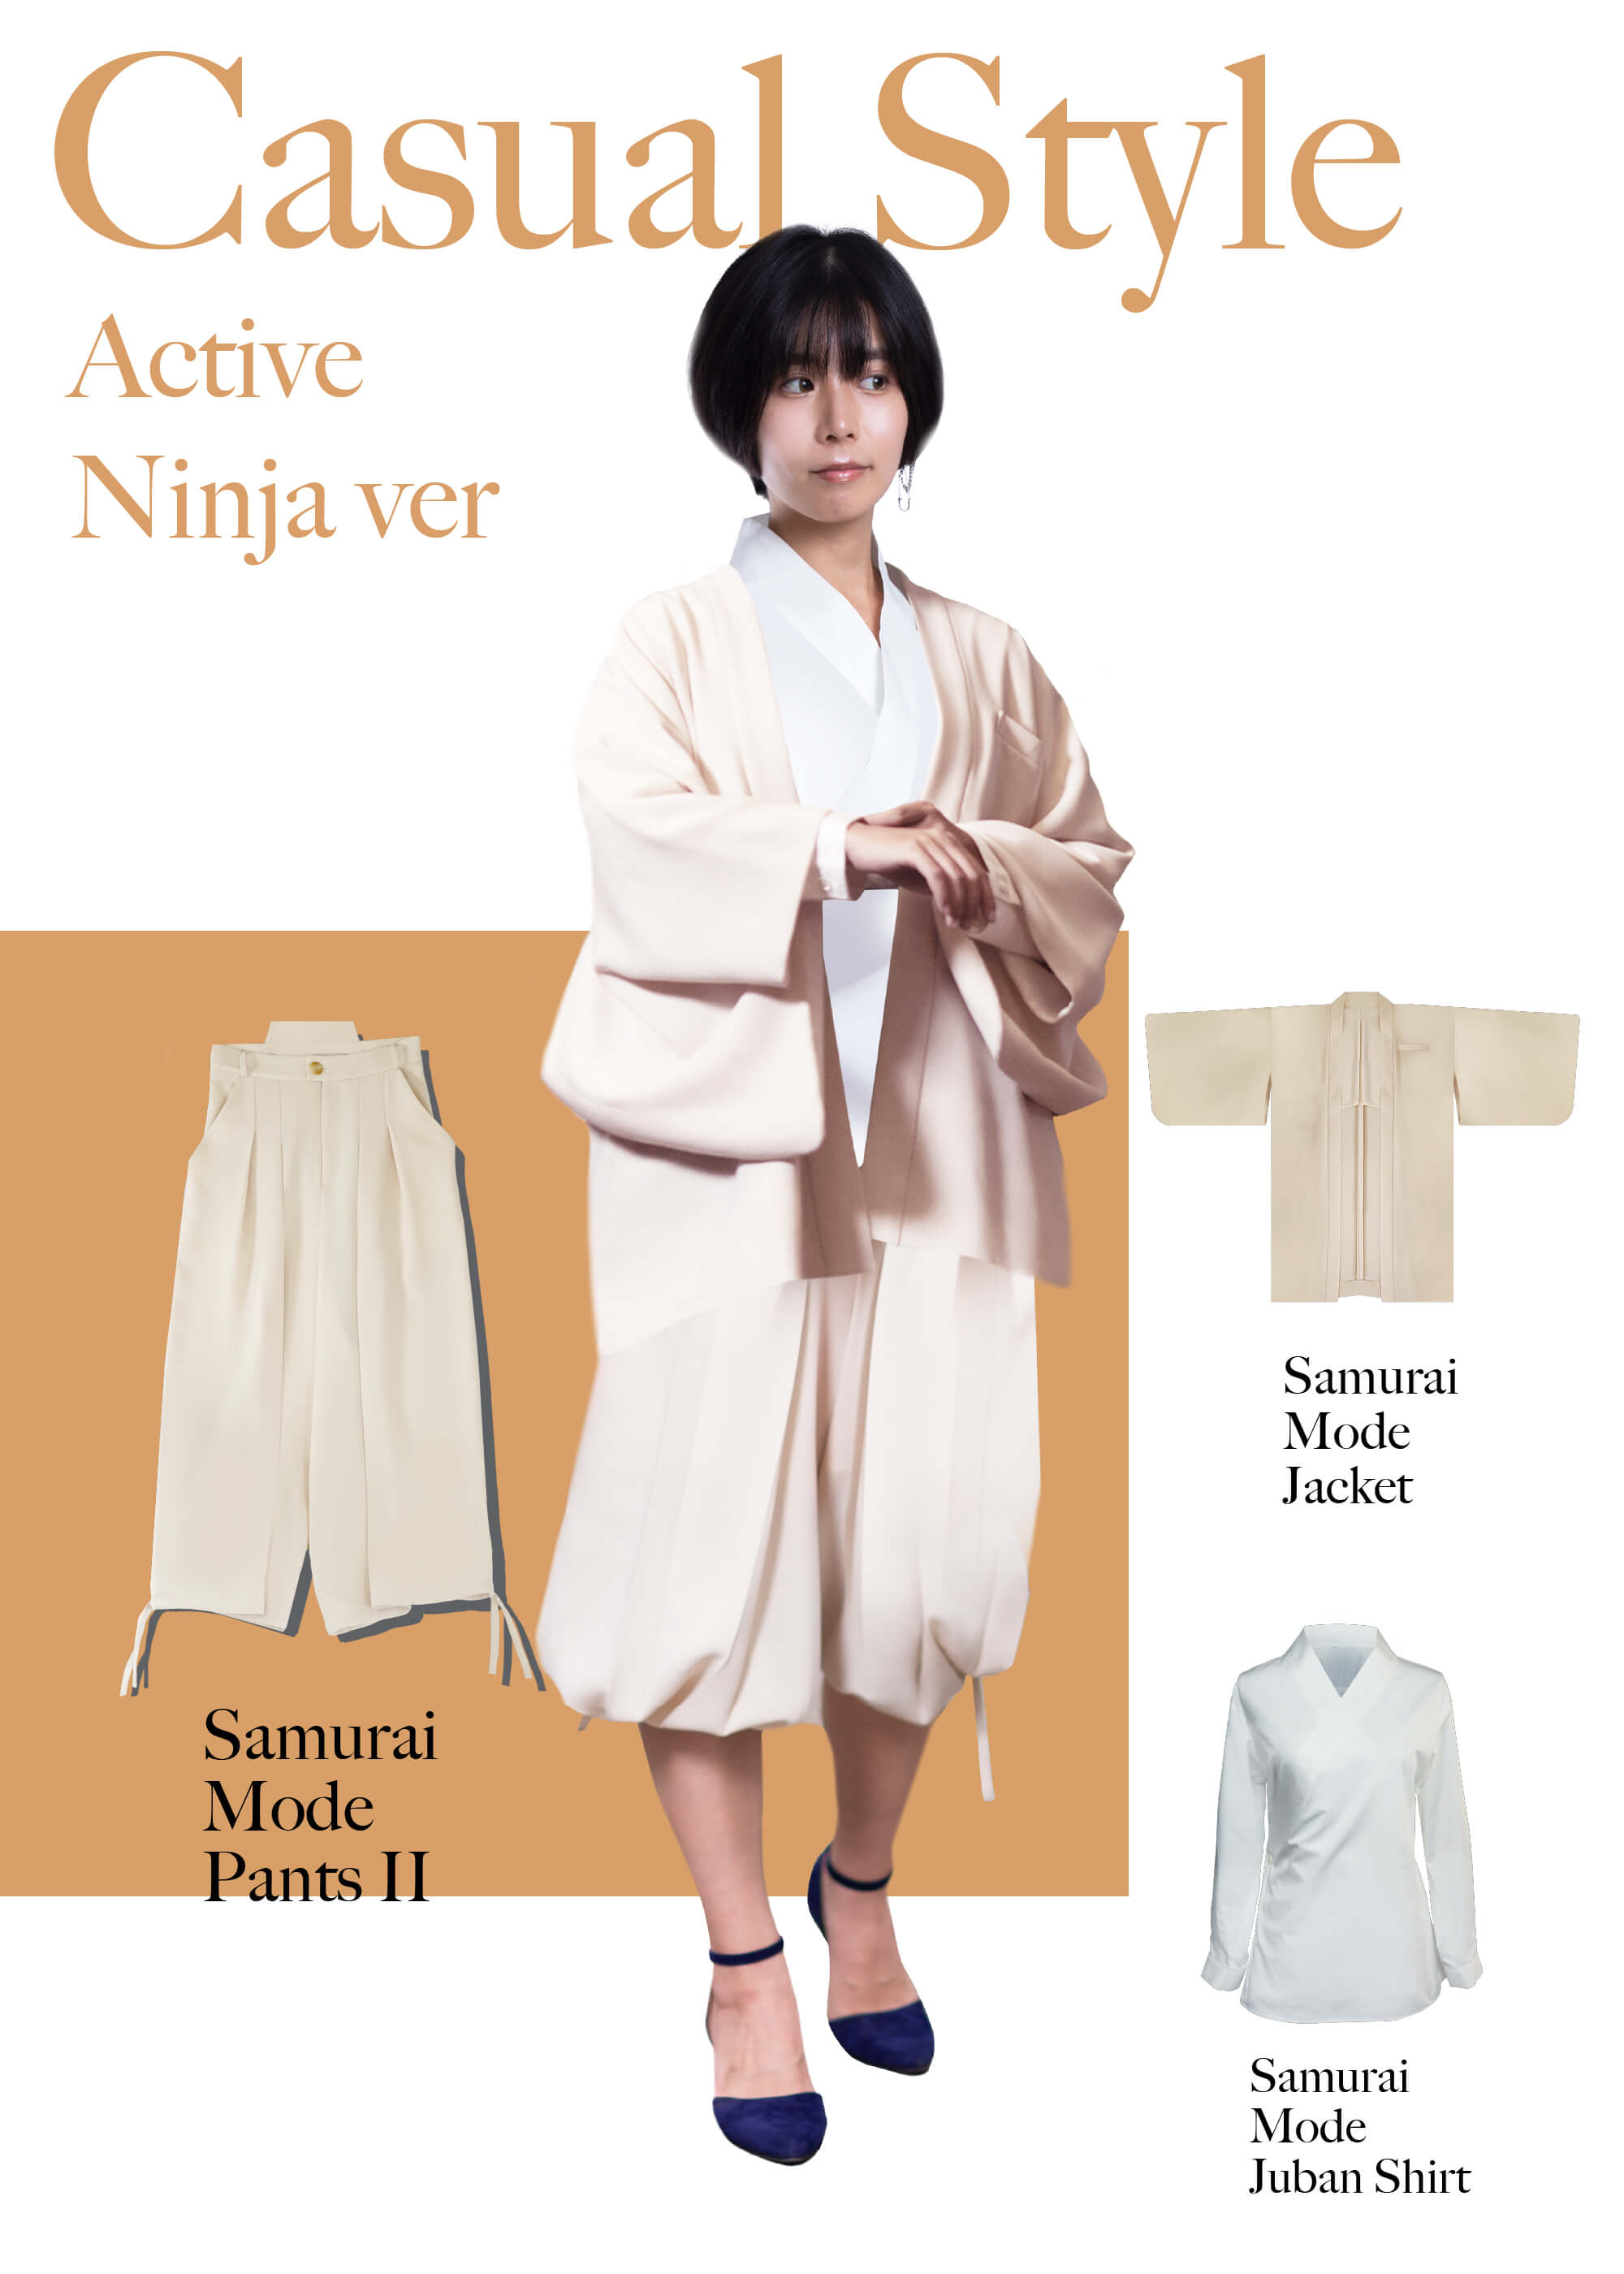 Samurai Mode Pants II Active Ninja version